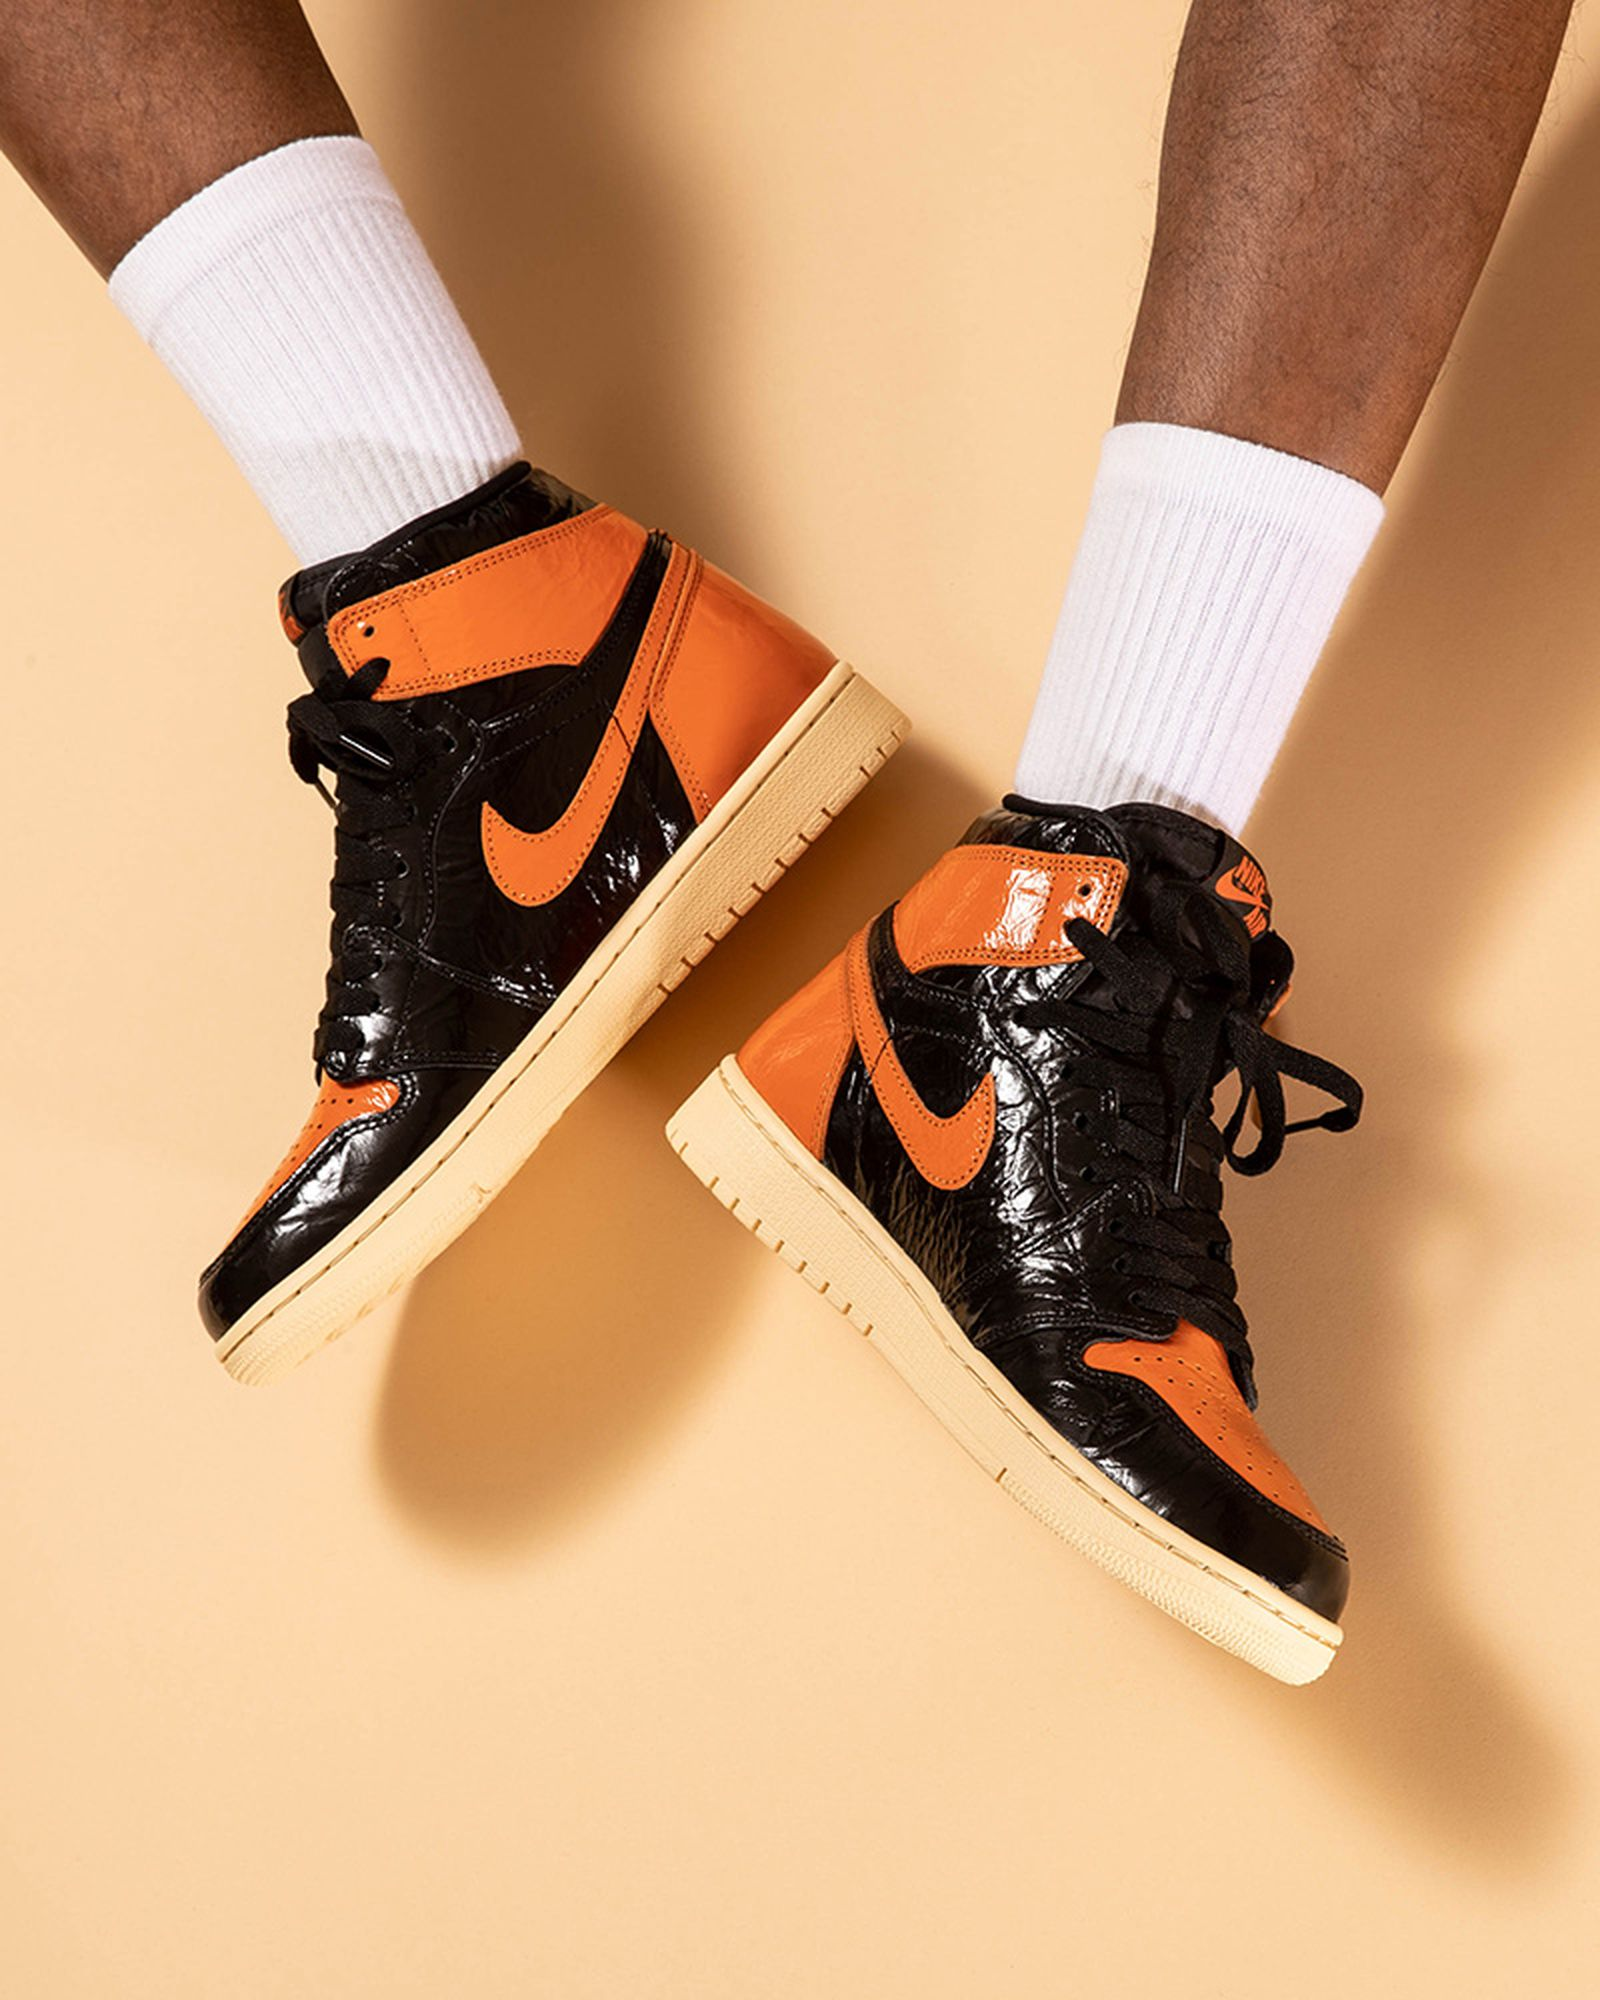 nike air jordan shattered backboard 3 release date price official jordan brand michael jordan nike air jordan 1